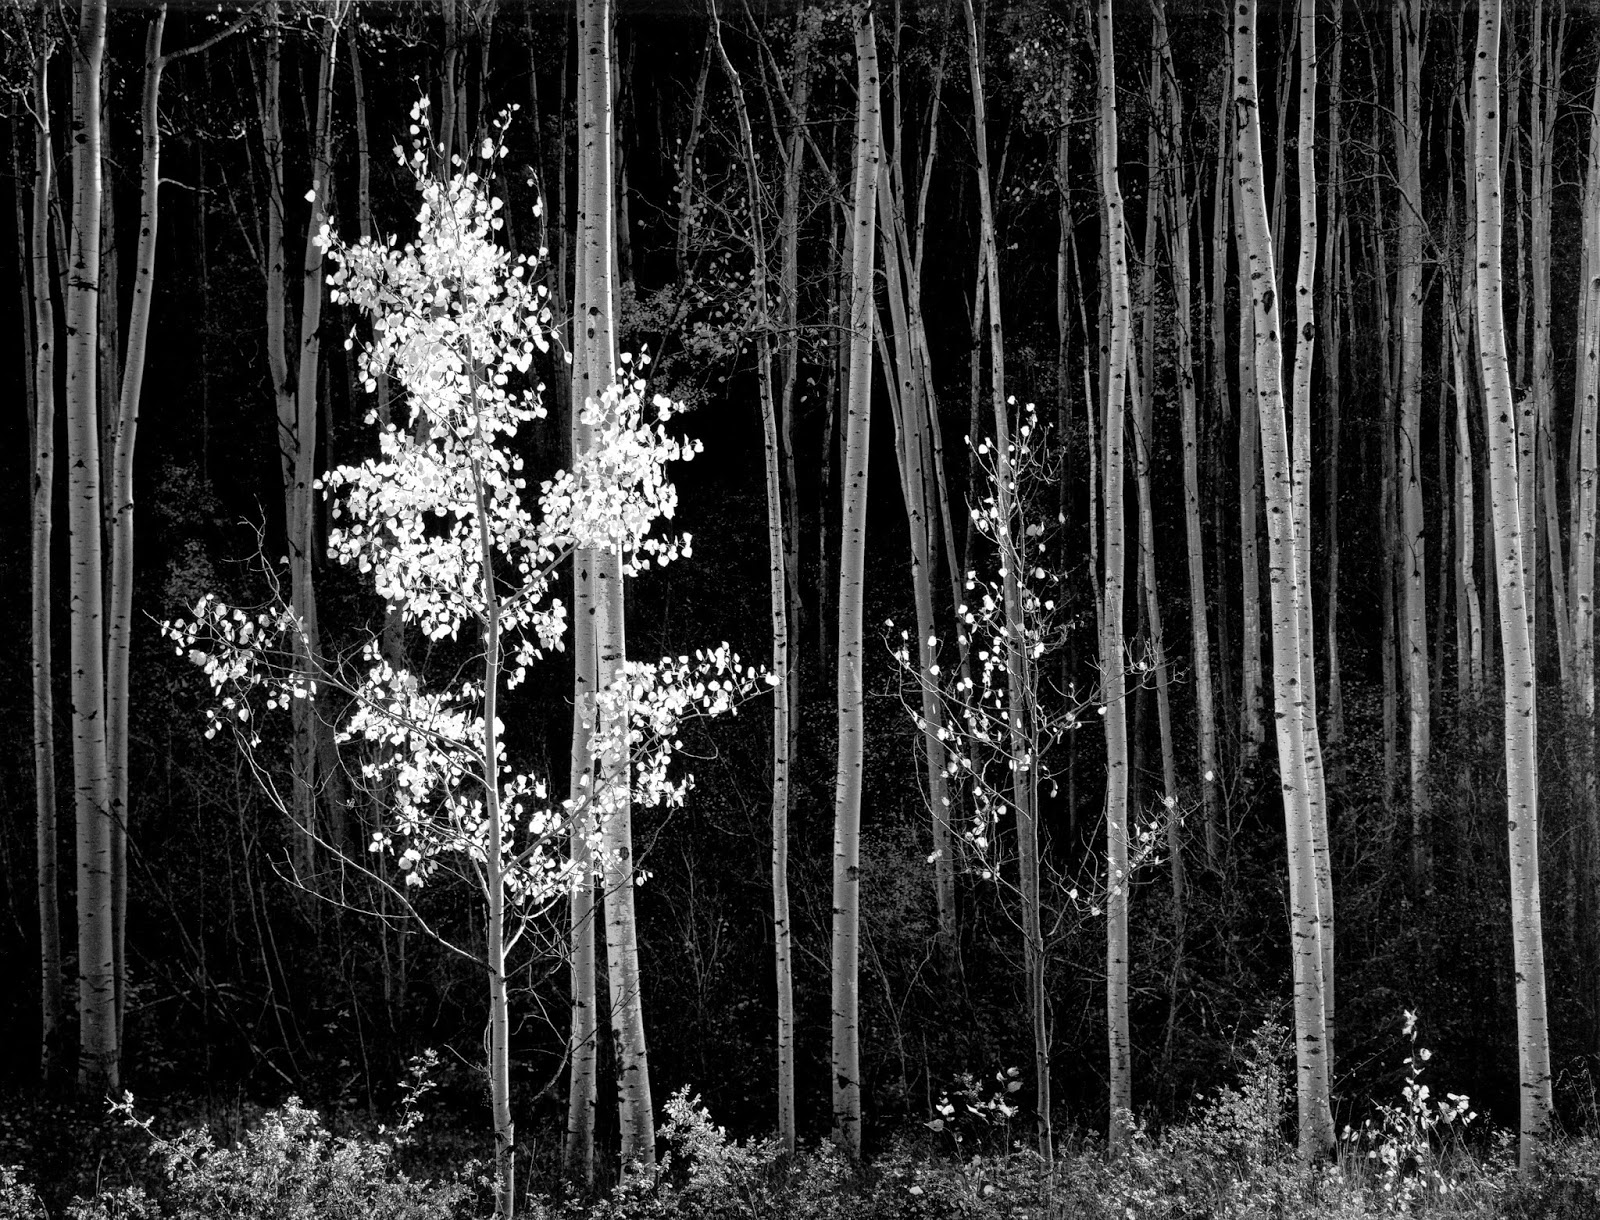 1958. Aspens, New Mexico. Ansel Adams